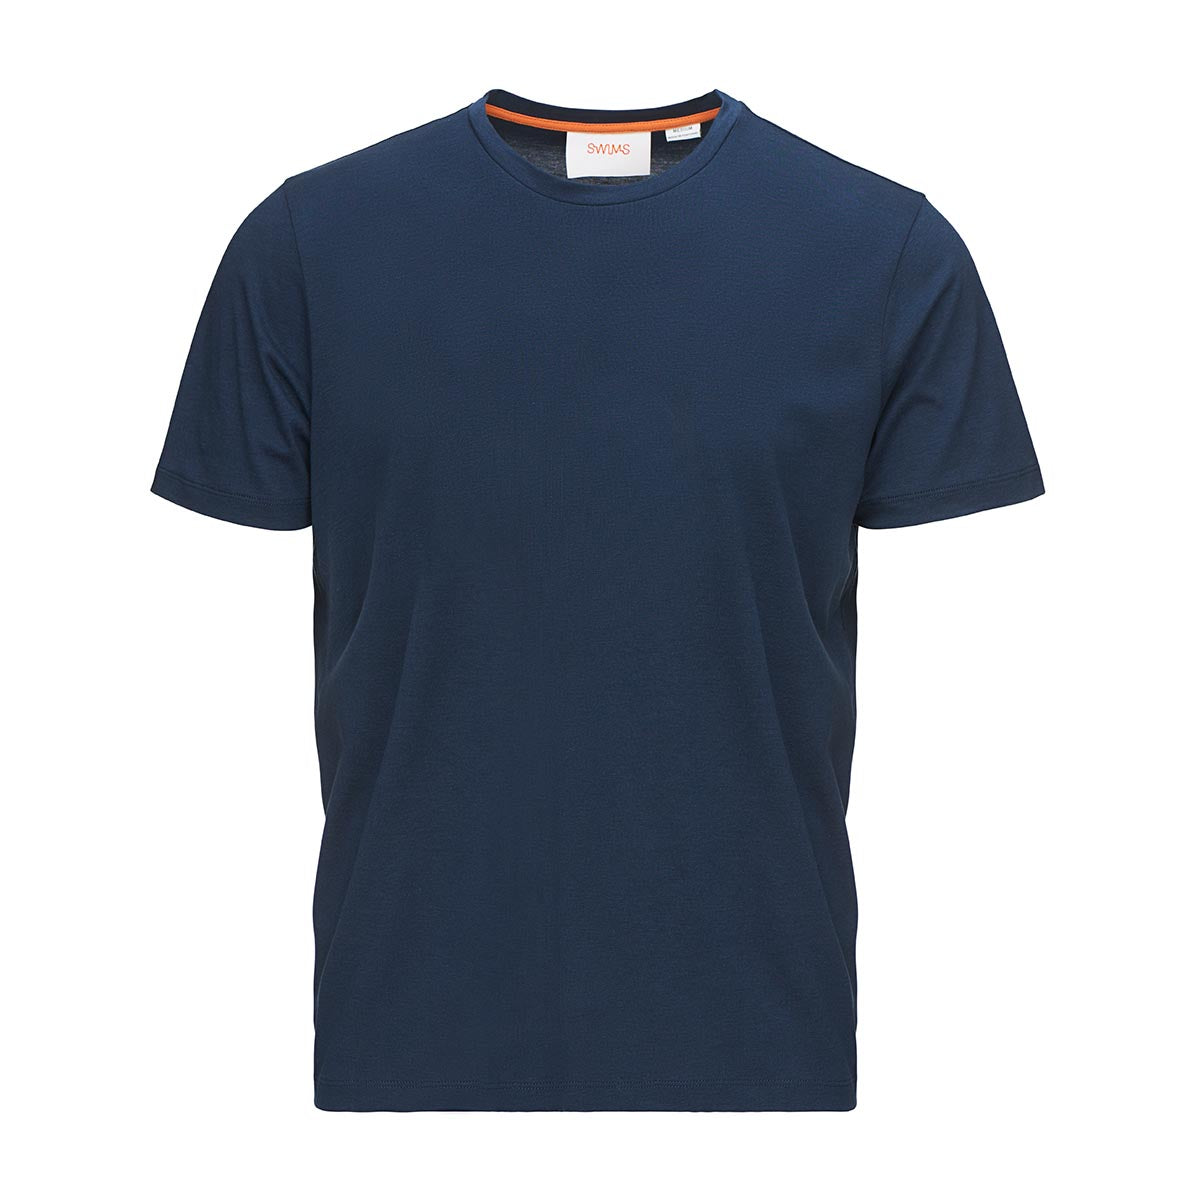 Breeze Ervik T-shirt - background::white,variant::Navy